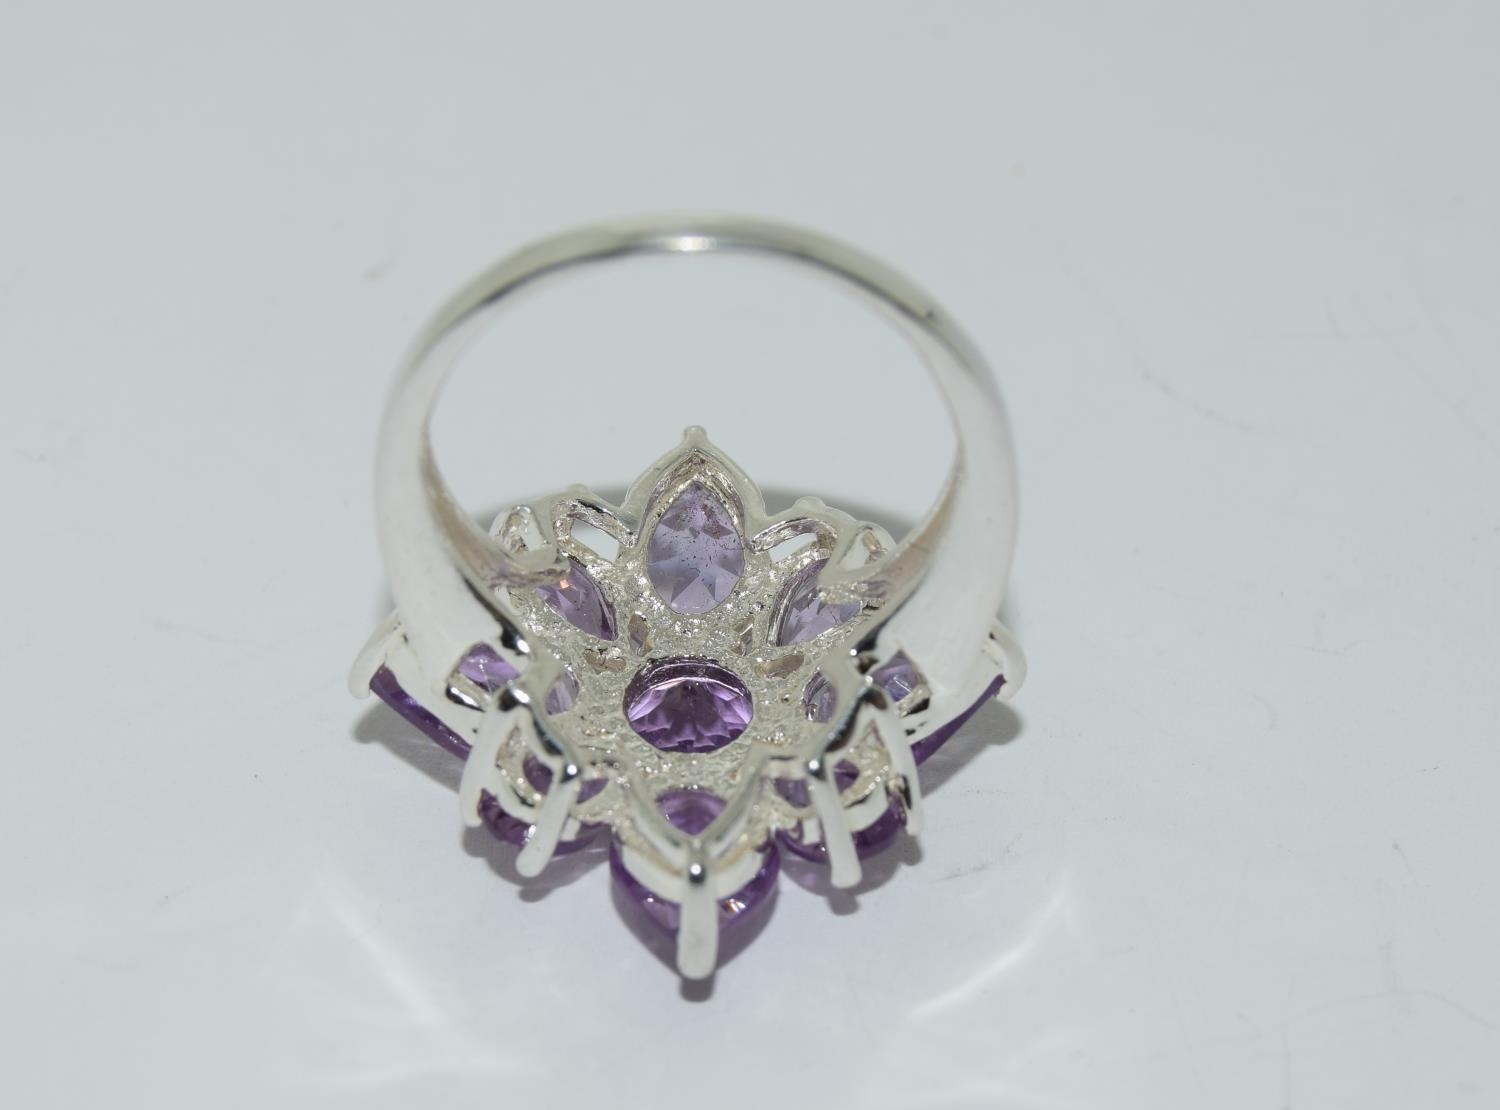 Large Amethyst 925 silver daisy cluster ring, Size P. - Image 3 of 3